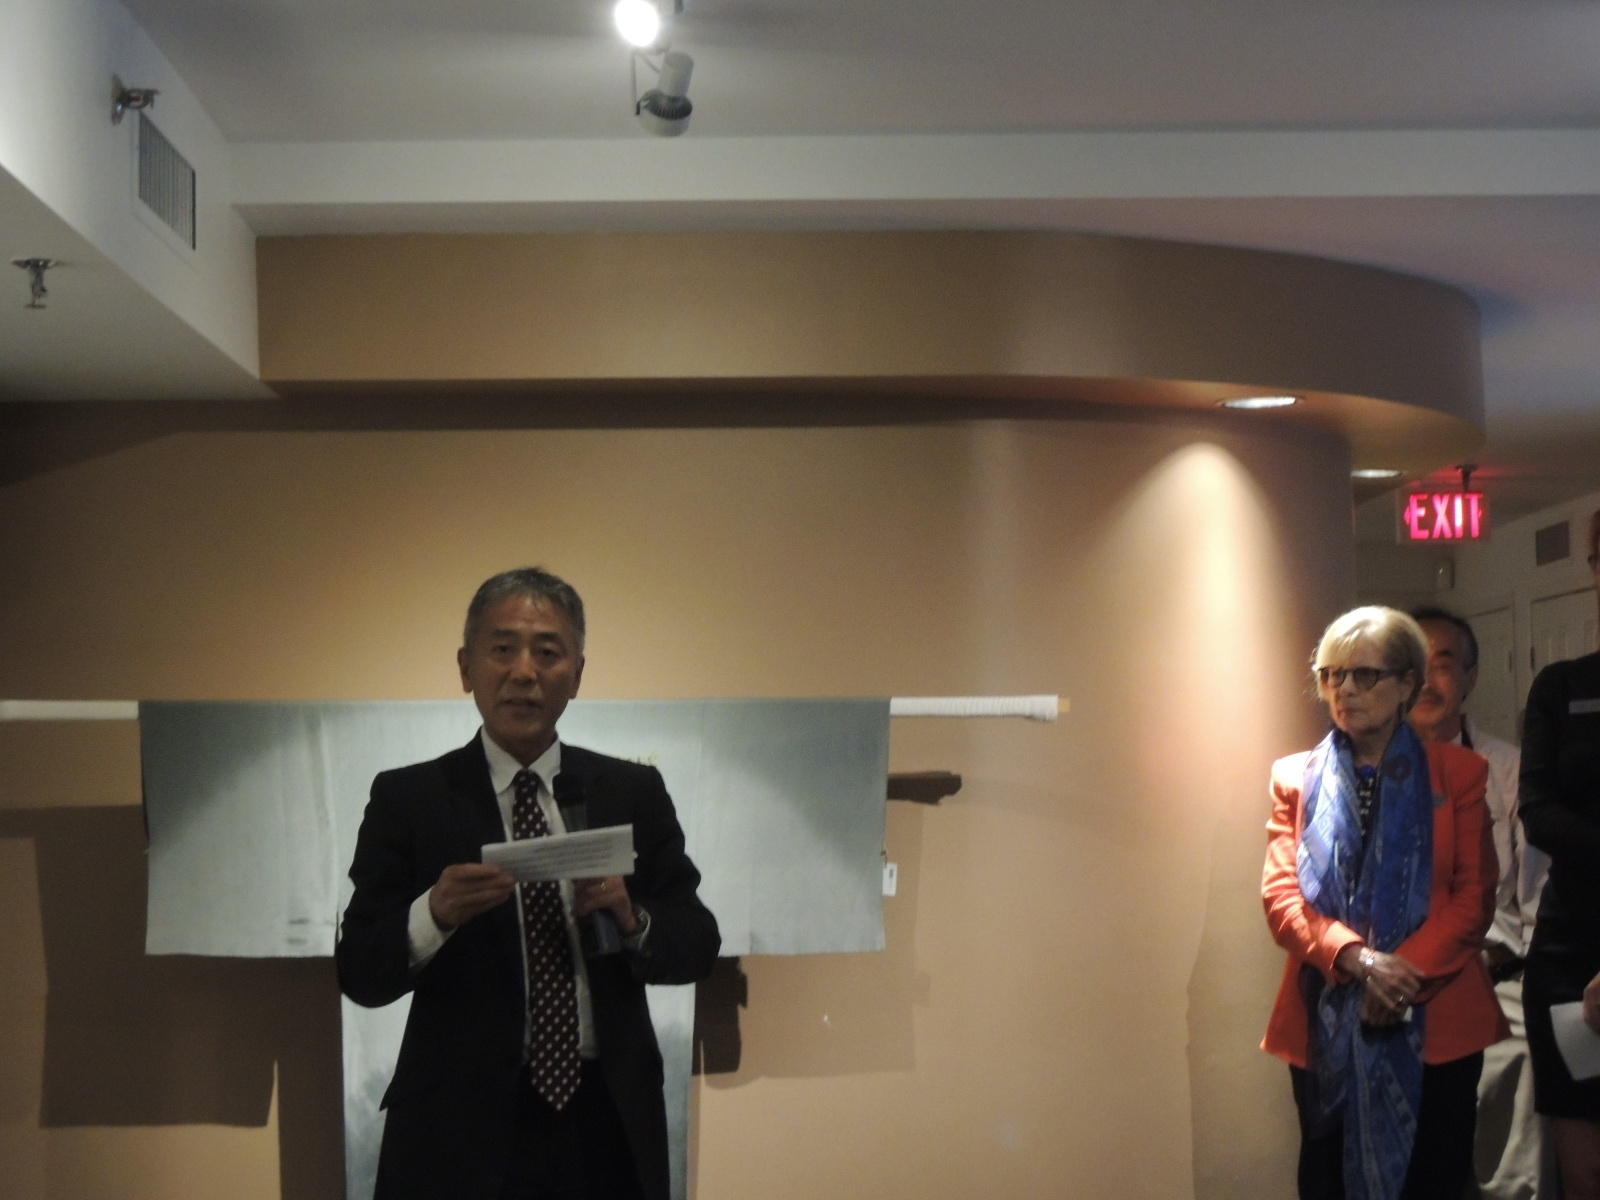 Consul General Nakayama Attends Diligence And Elegance The Nature